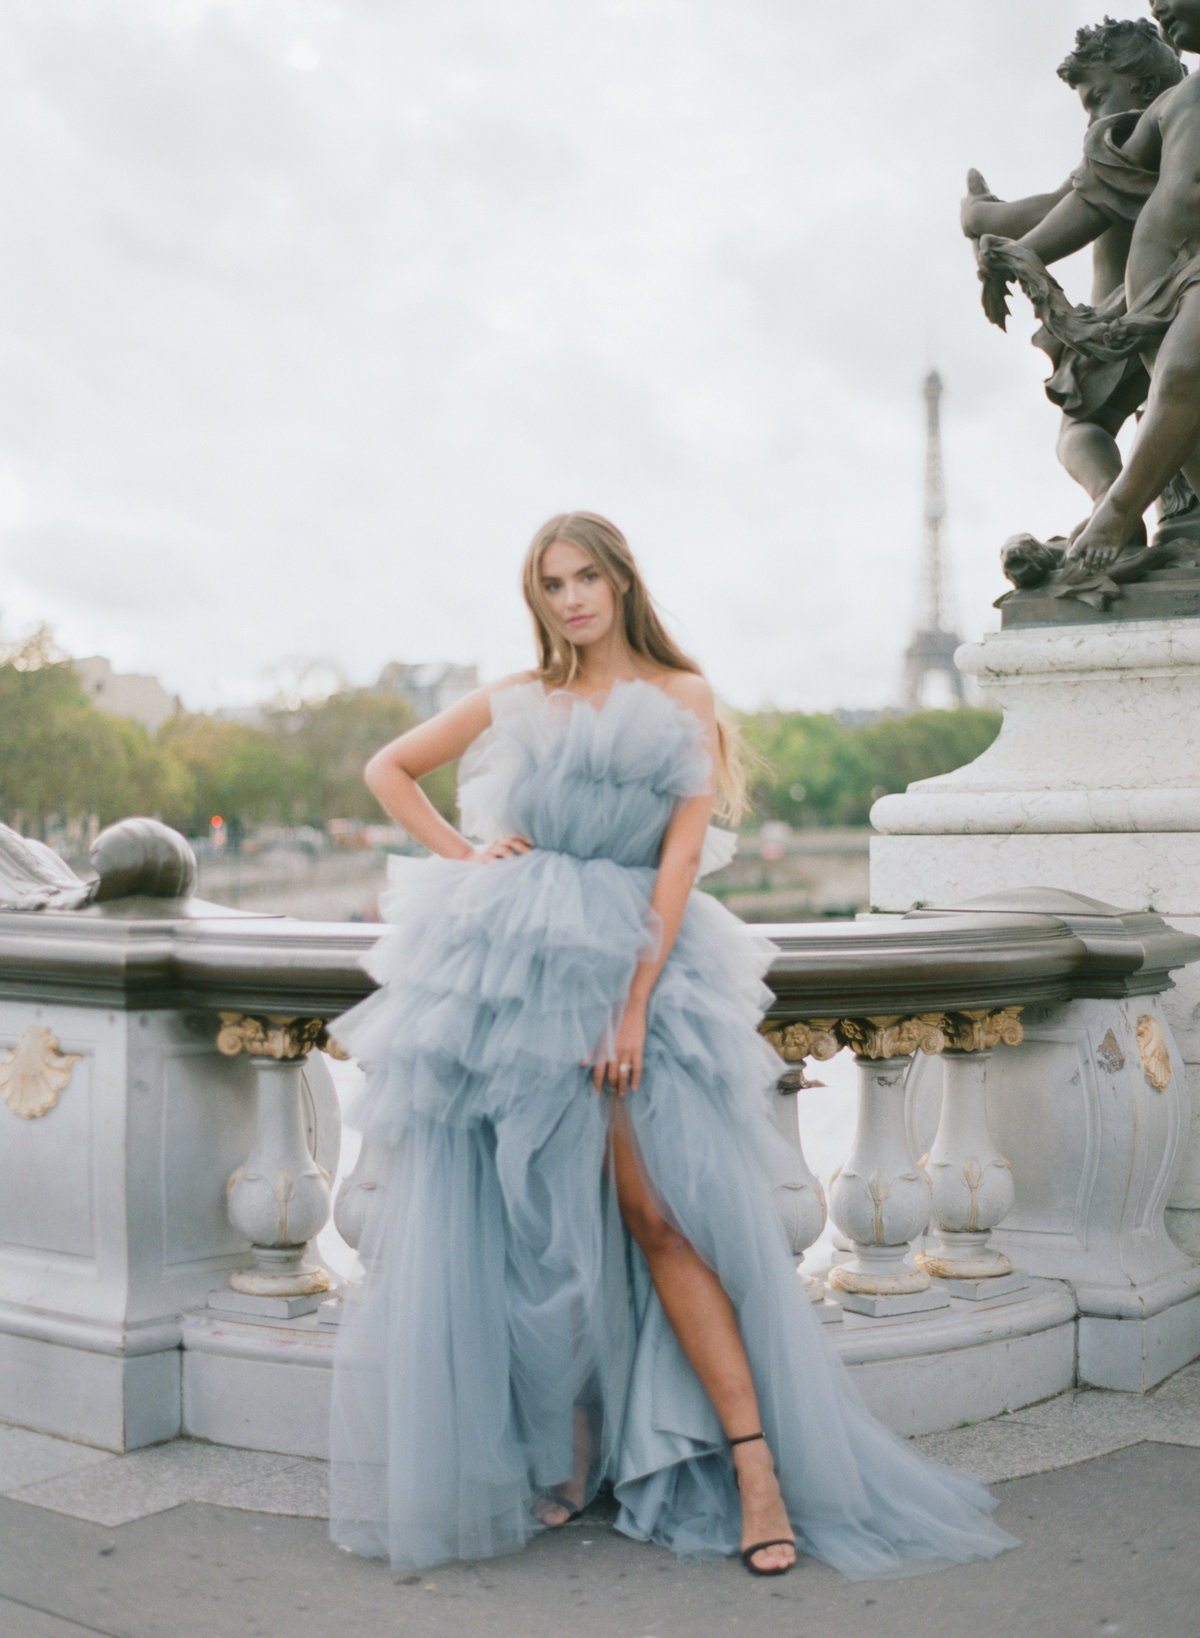 2019ParisStyleShoot-195